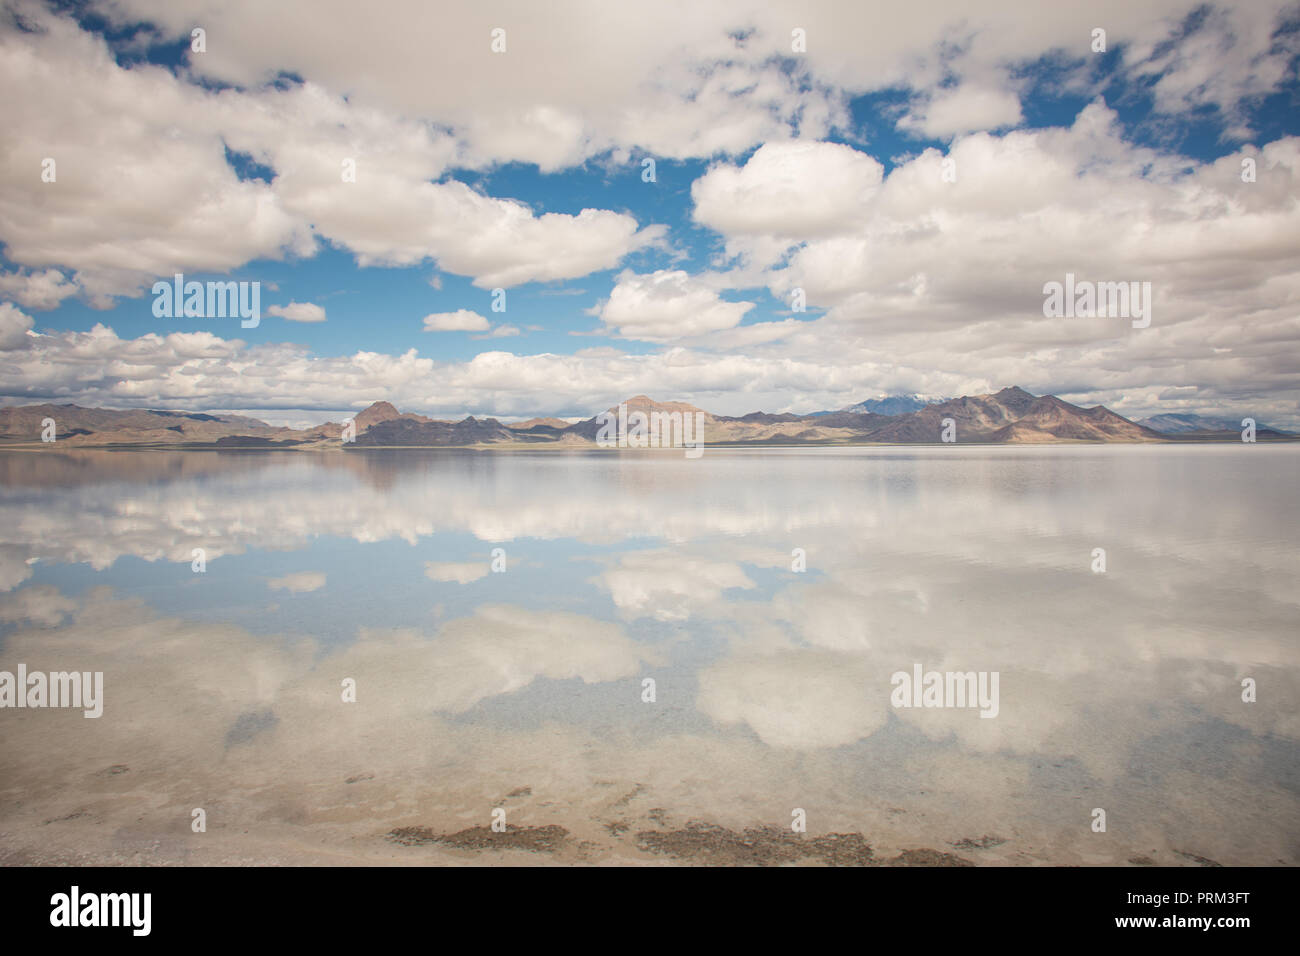 Wide angle view of Bonneville Salt Flats in Utah create a mirror reflection scene on the water, looking surreal Stock Photo